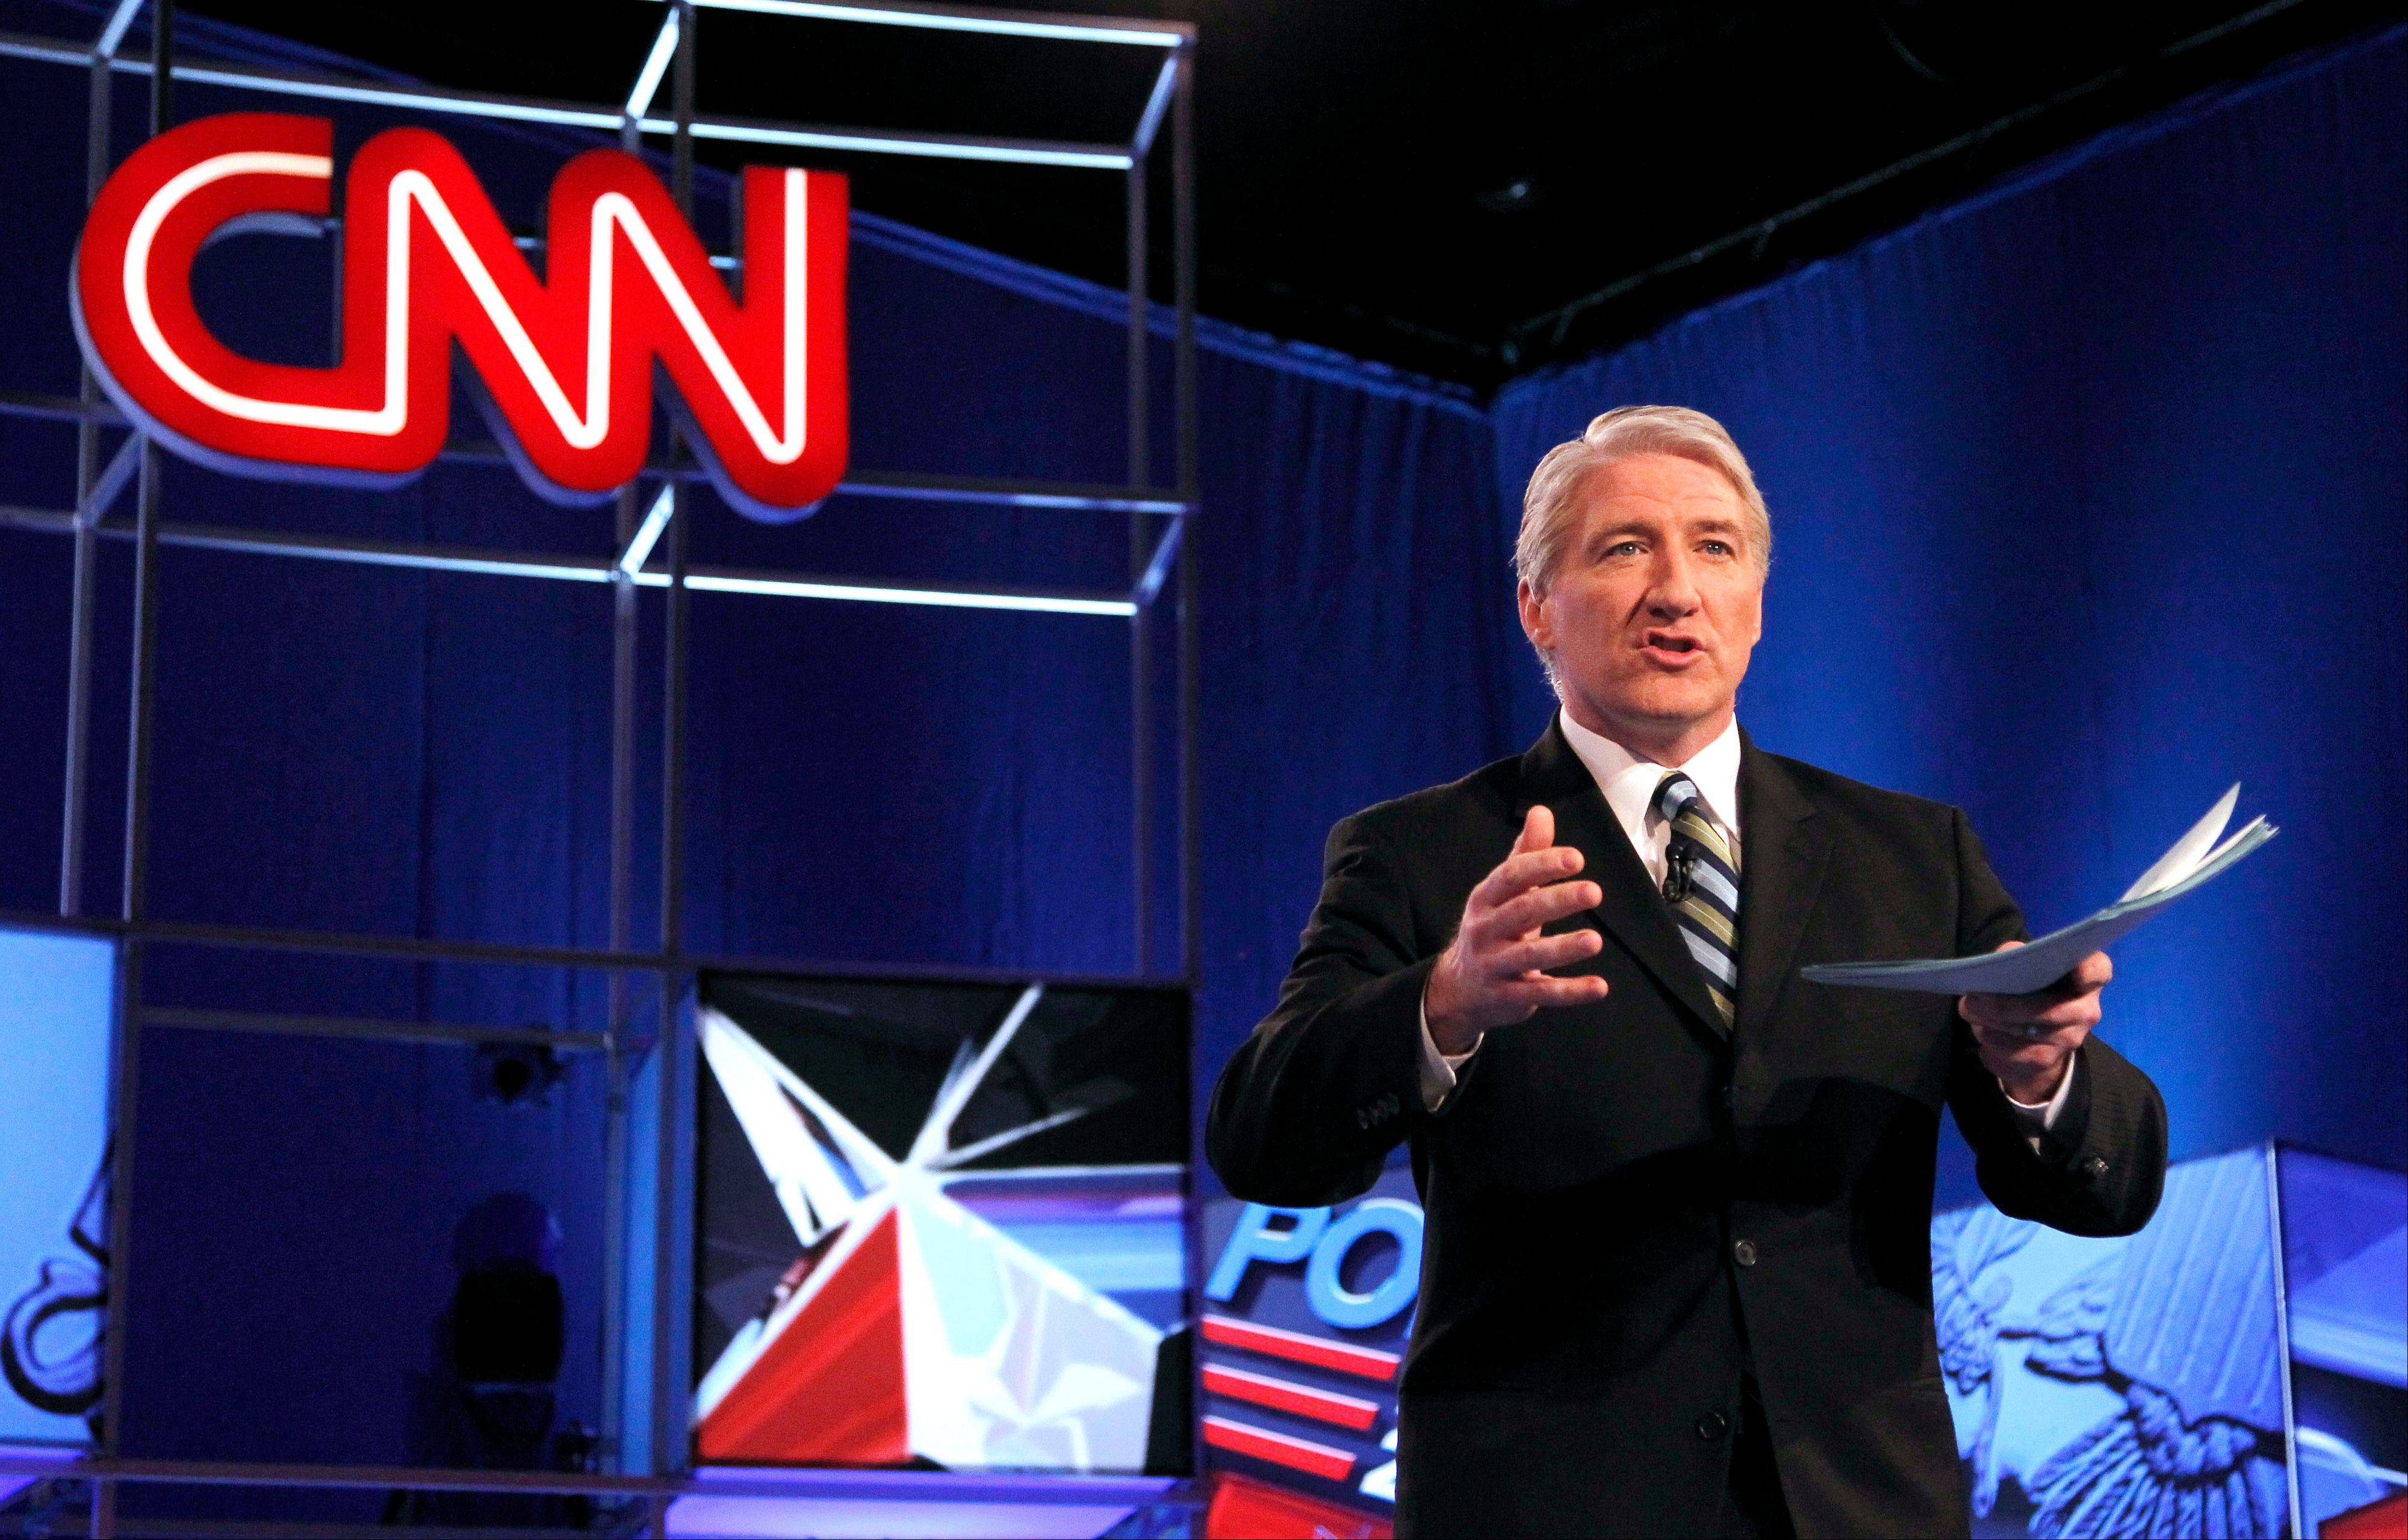 This Feb. 22, 2012 photo shows CNN's John King before the Republican presidential candidates debate in Mesa, Ariz. High-speed Internet services represent the fastest growing and most profitable line of business for cable companies. Last year, providing Internet access was 12 percent more profitable for Time Warner Cable than providing TV packages, despite taking in a third less revenue. Time Warner Cable has so far resisted Charter's overtures, but Charter has vowed to take the bid directly to shareholders if needed.